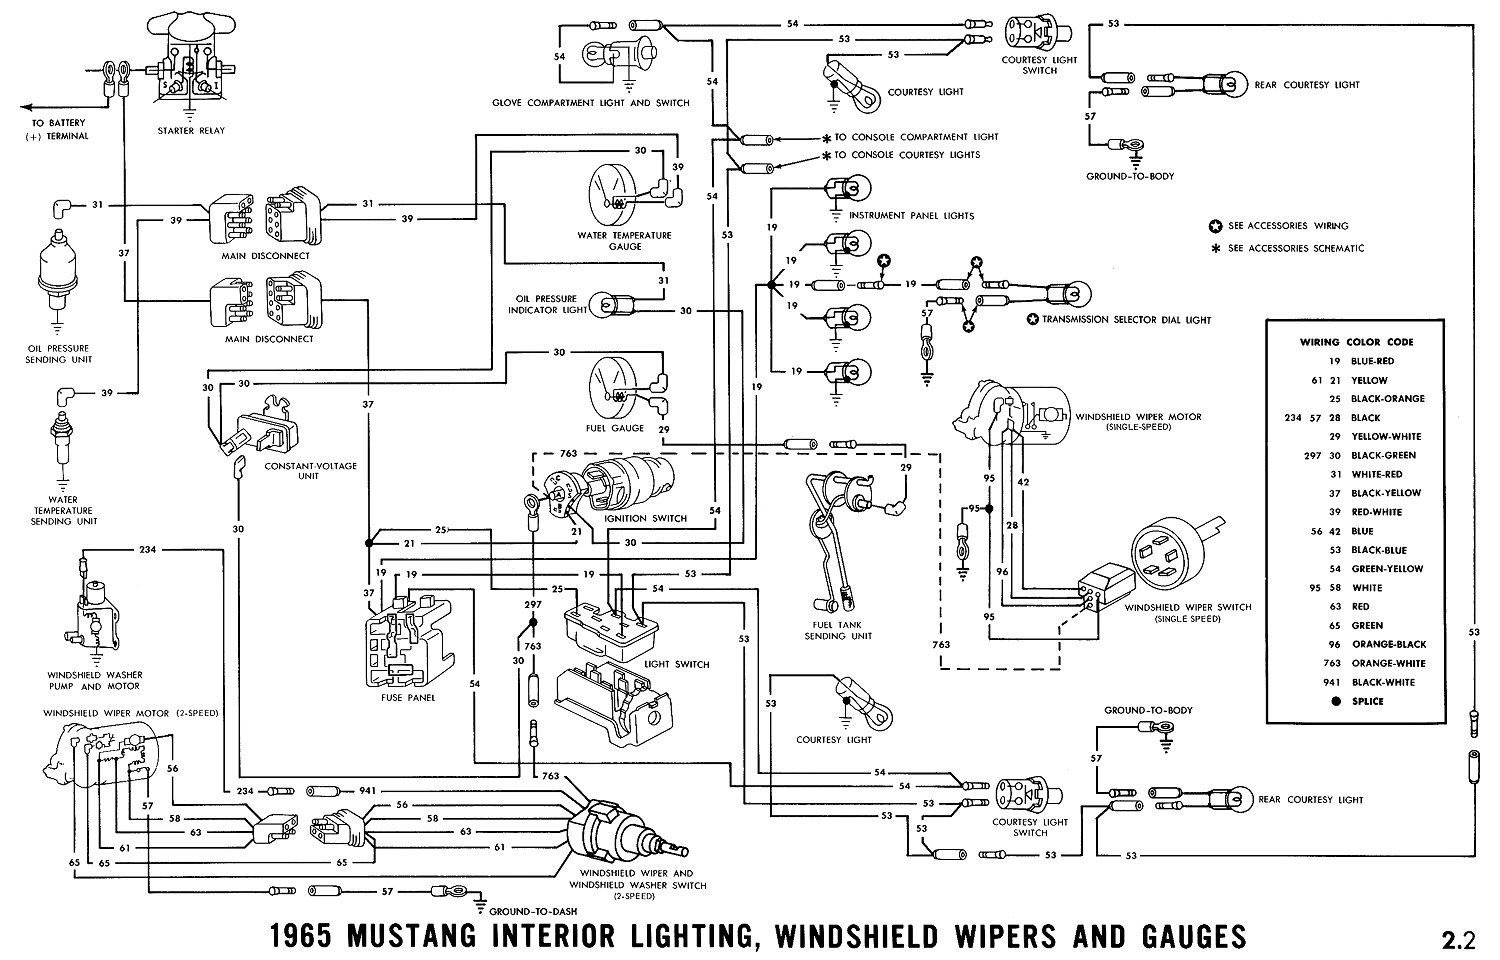 1965g 1965 mustang wiring diagrams average joe restoration 65 Chevy Truck Wiring Diagram at soozxer.org